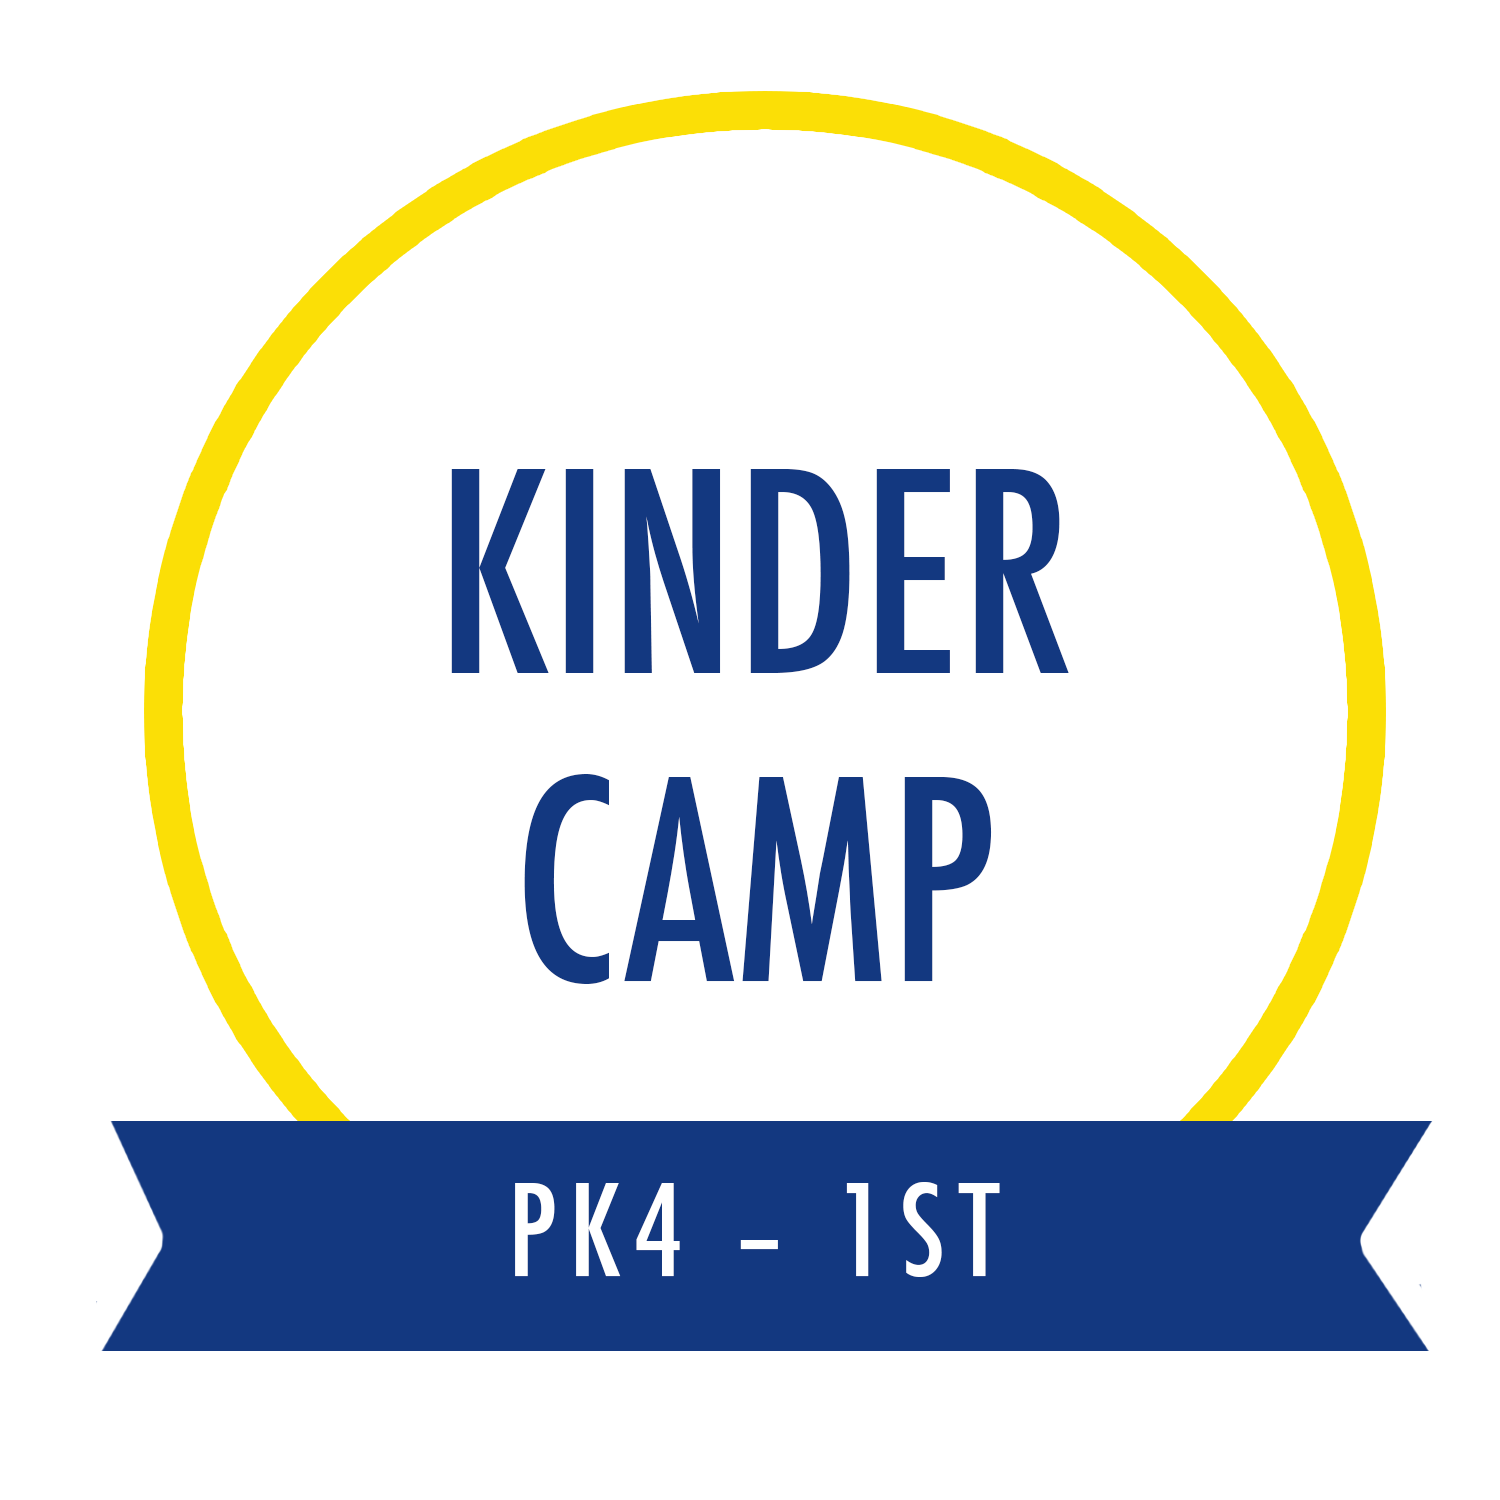 Kinder Camp (PK4-1st)